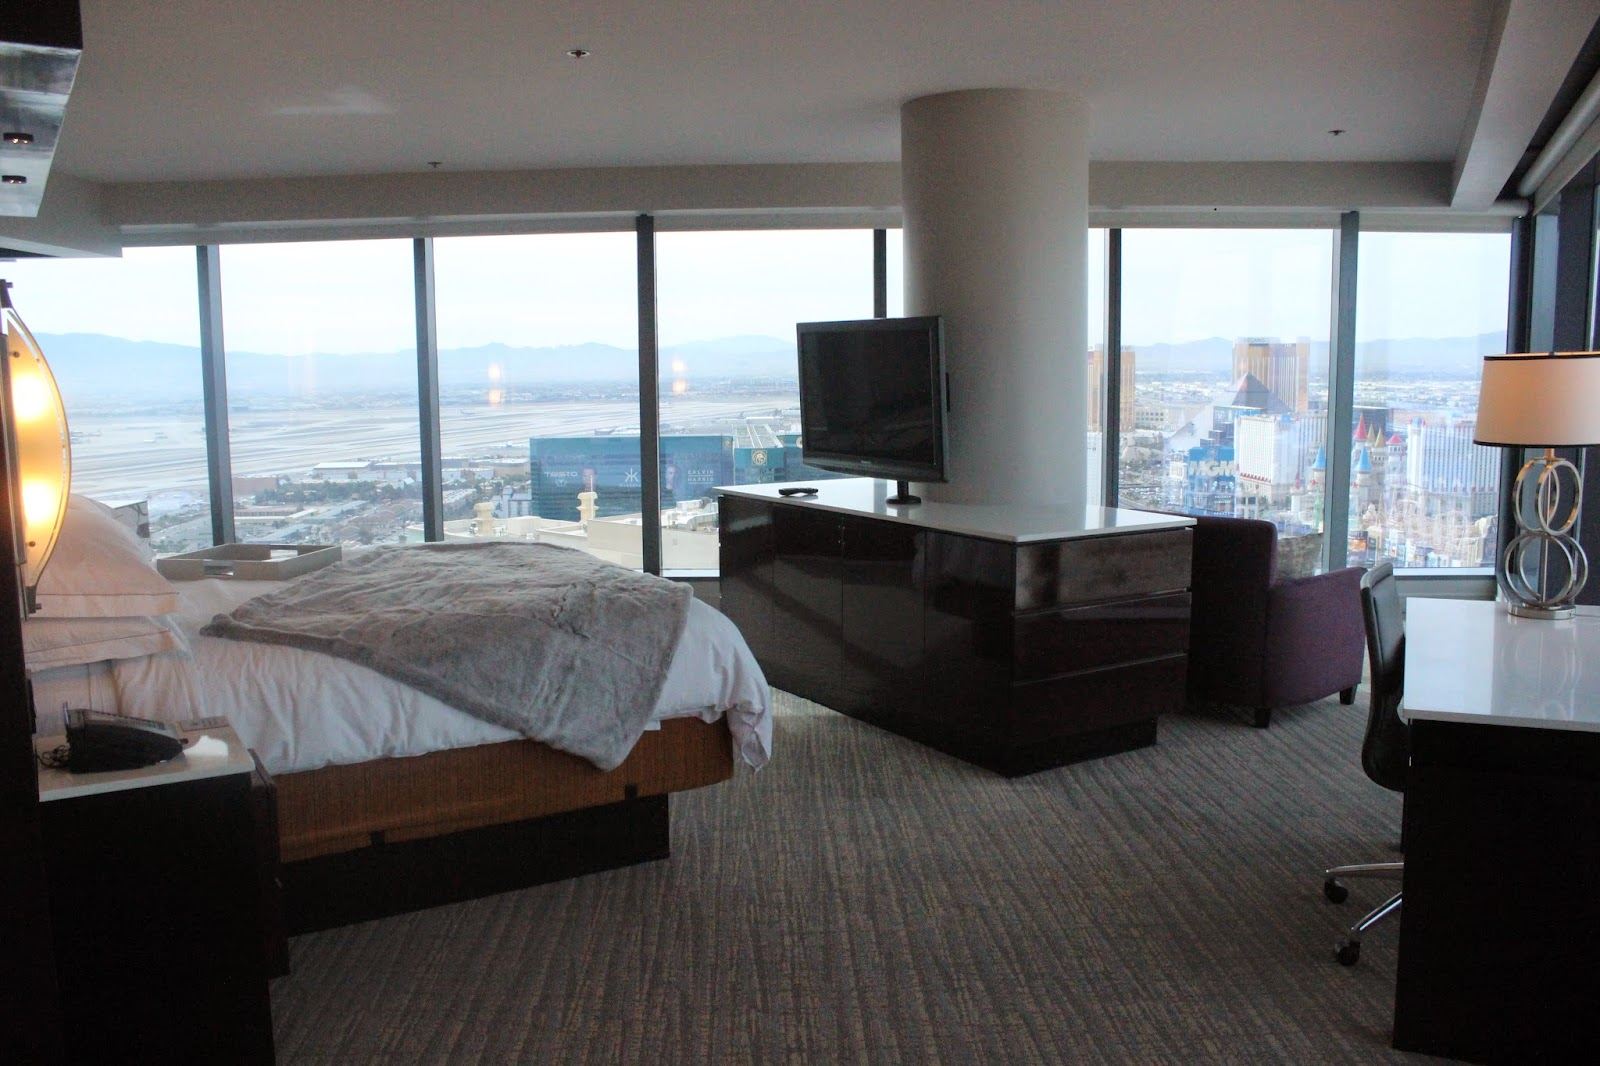 elara las vegas 1 bedroom suite. The 1st time I came to the Elara was back in 2012 for a bachelorette party  We were 1 bedroom suite more recently stayed King Studio Closet Whisperer 5 Reasons You should stay at